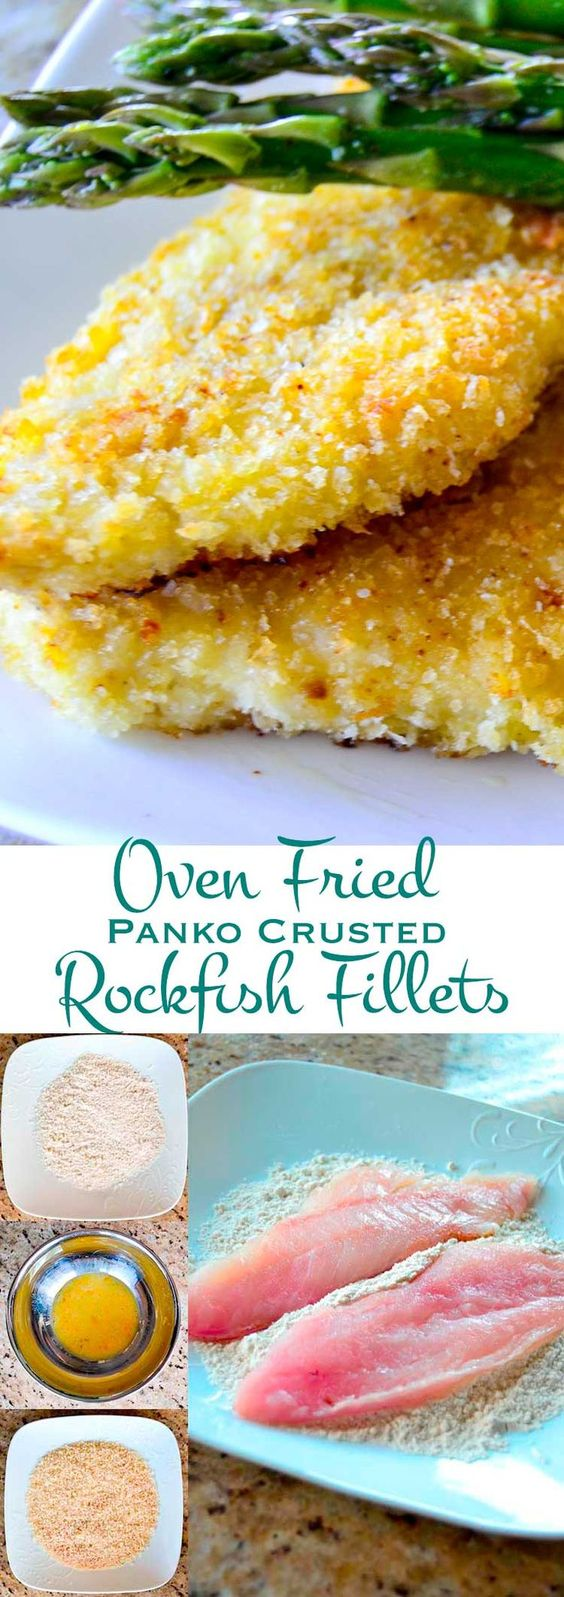 Panko Crusted Oven Fried Rockfish Fillets | Recipe | Rockfish and ...